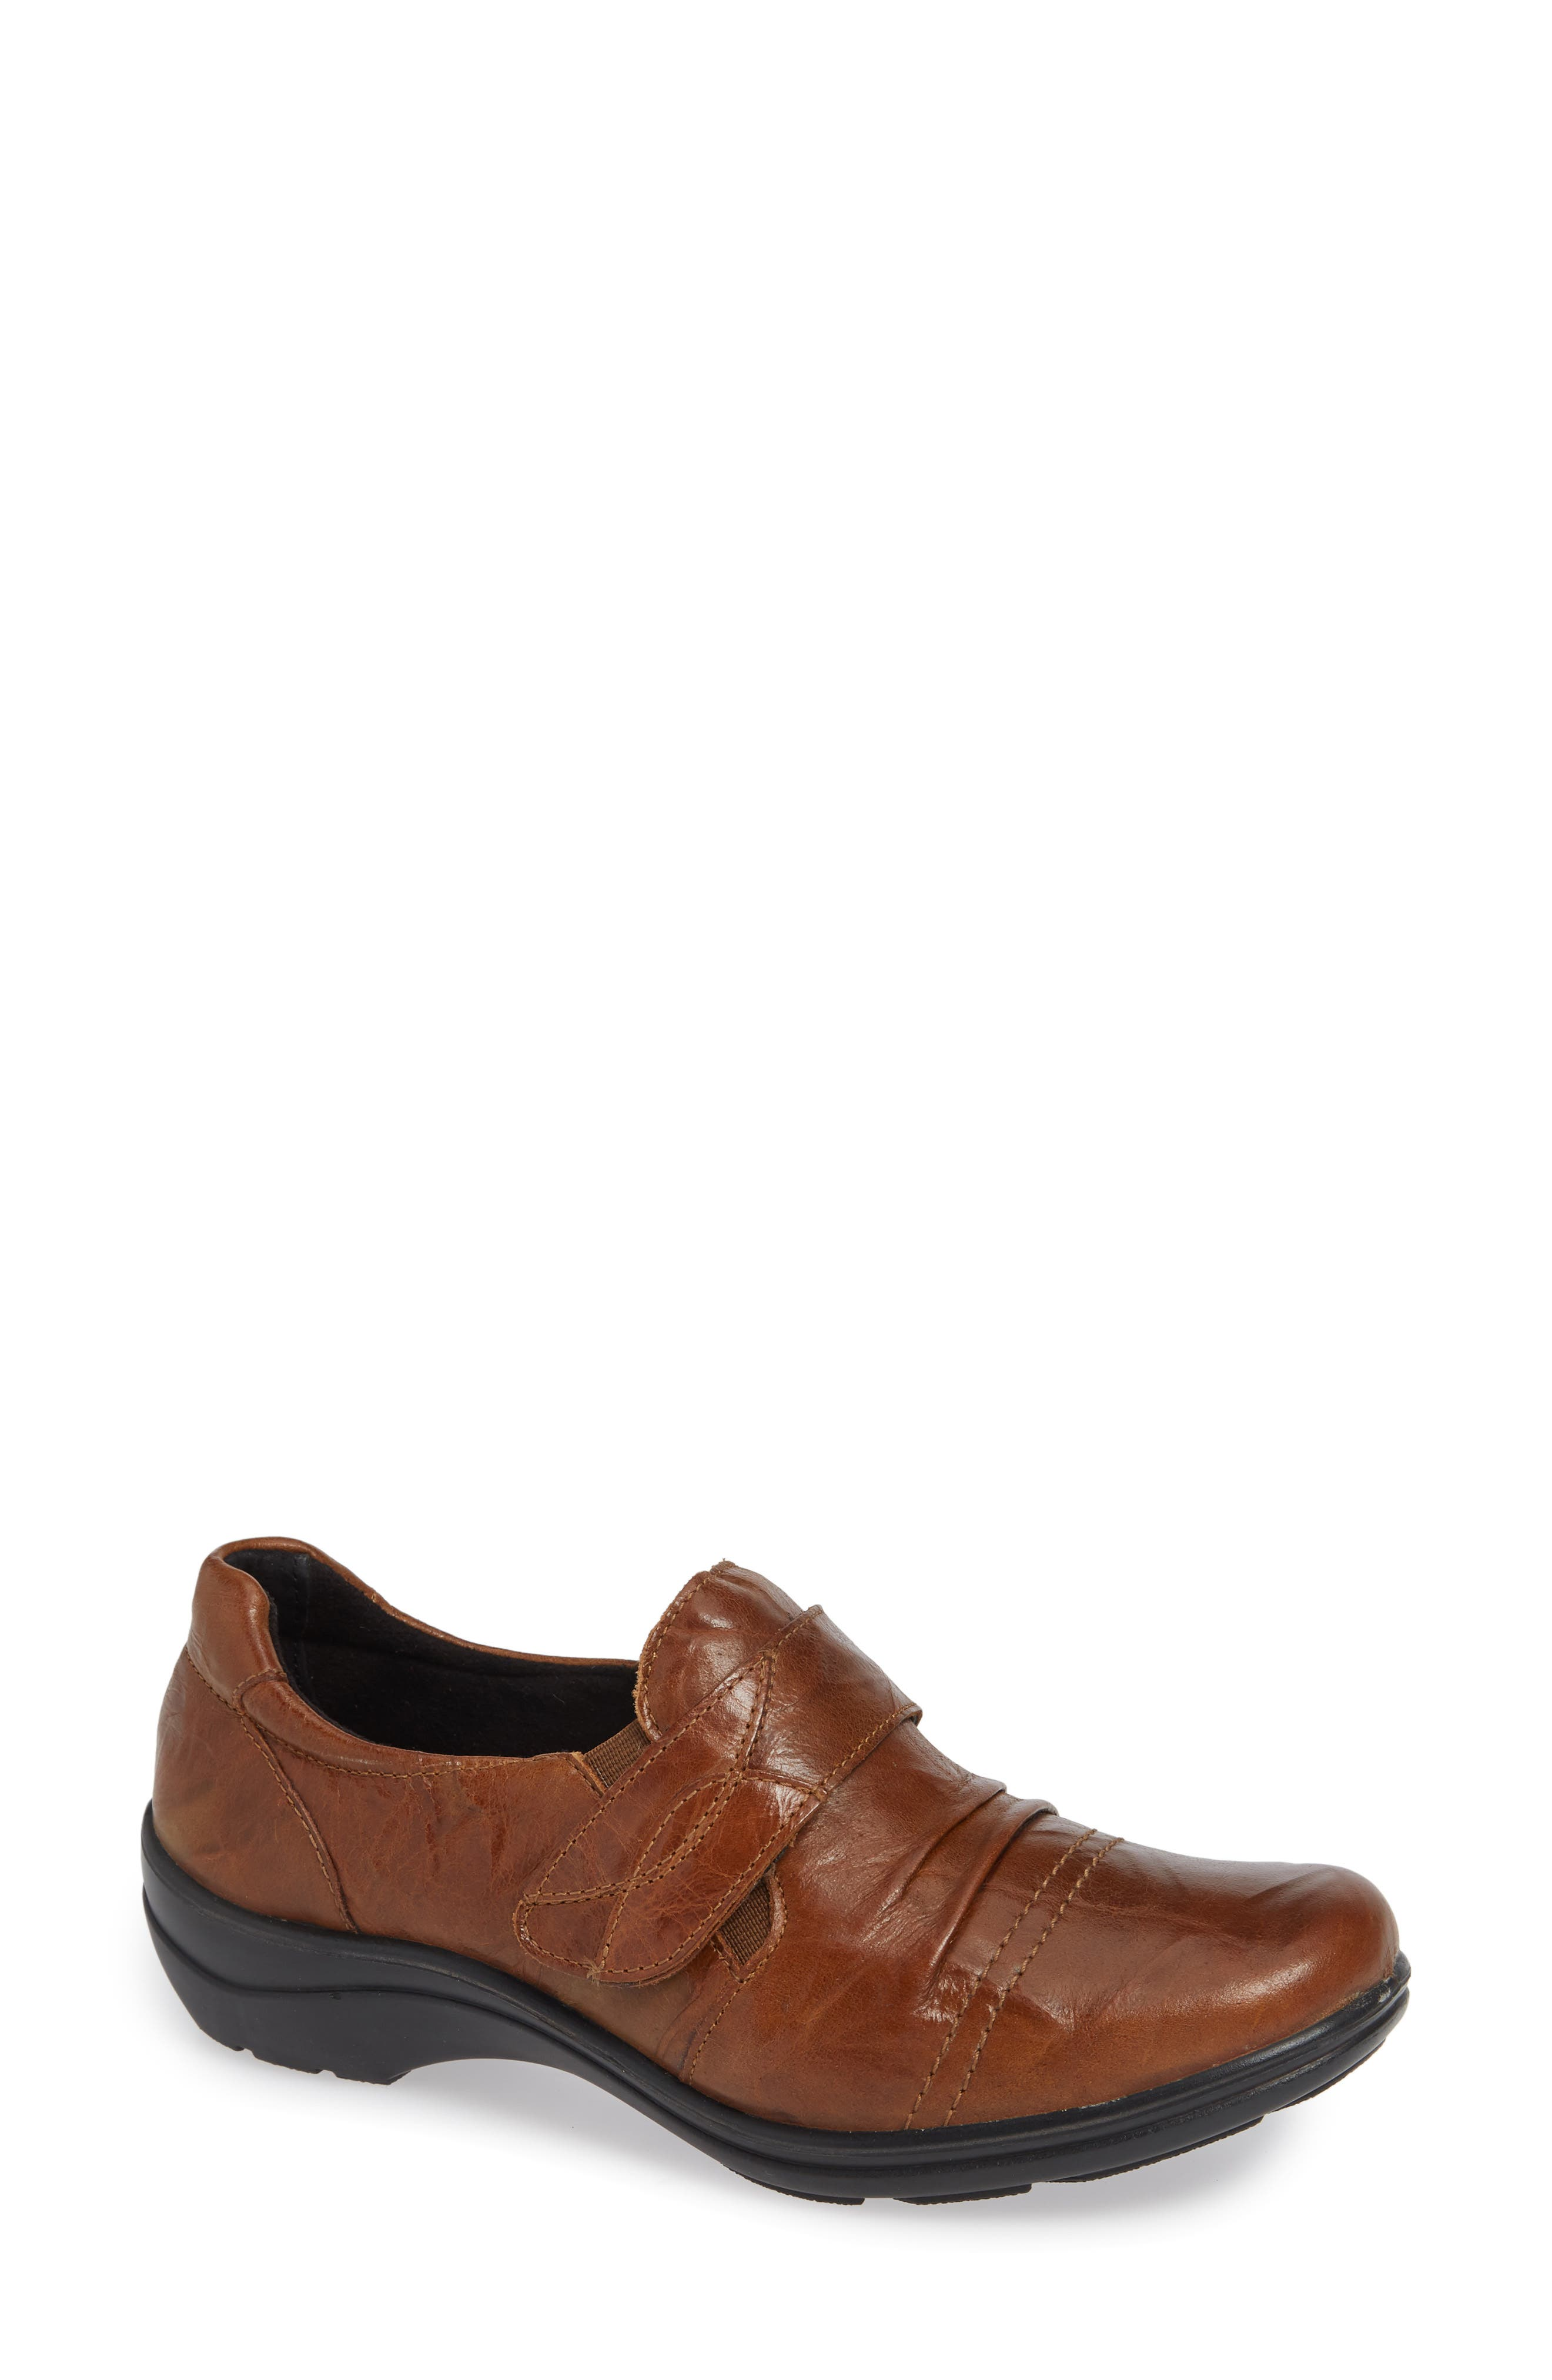 Cassie 43 Loafer,                         Main,                         color, BROWN LEATHER